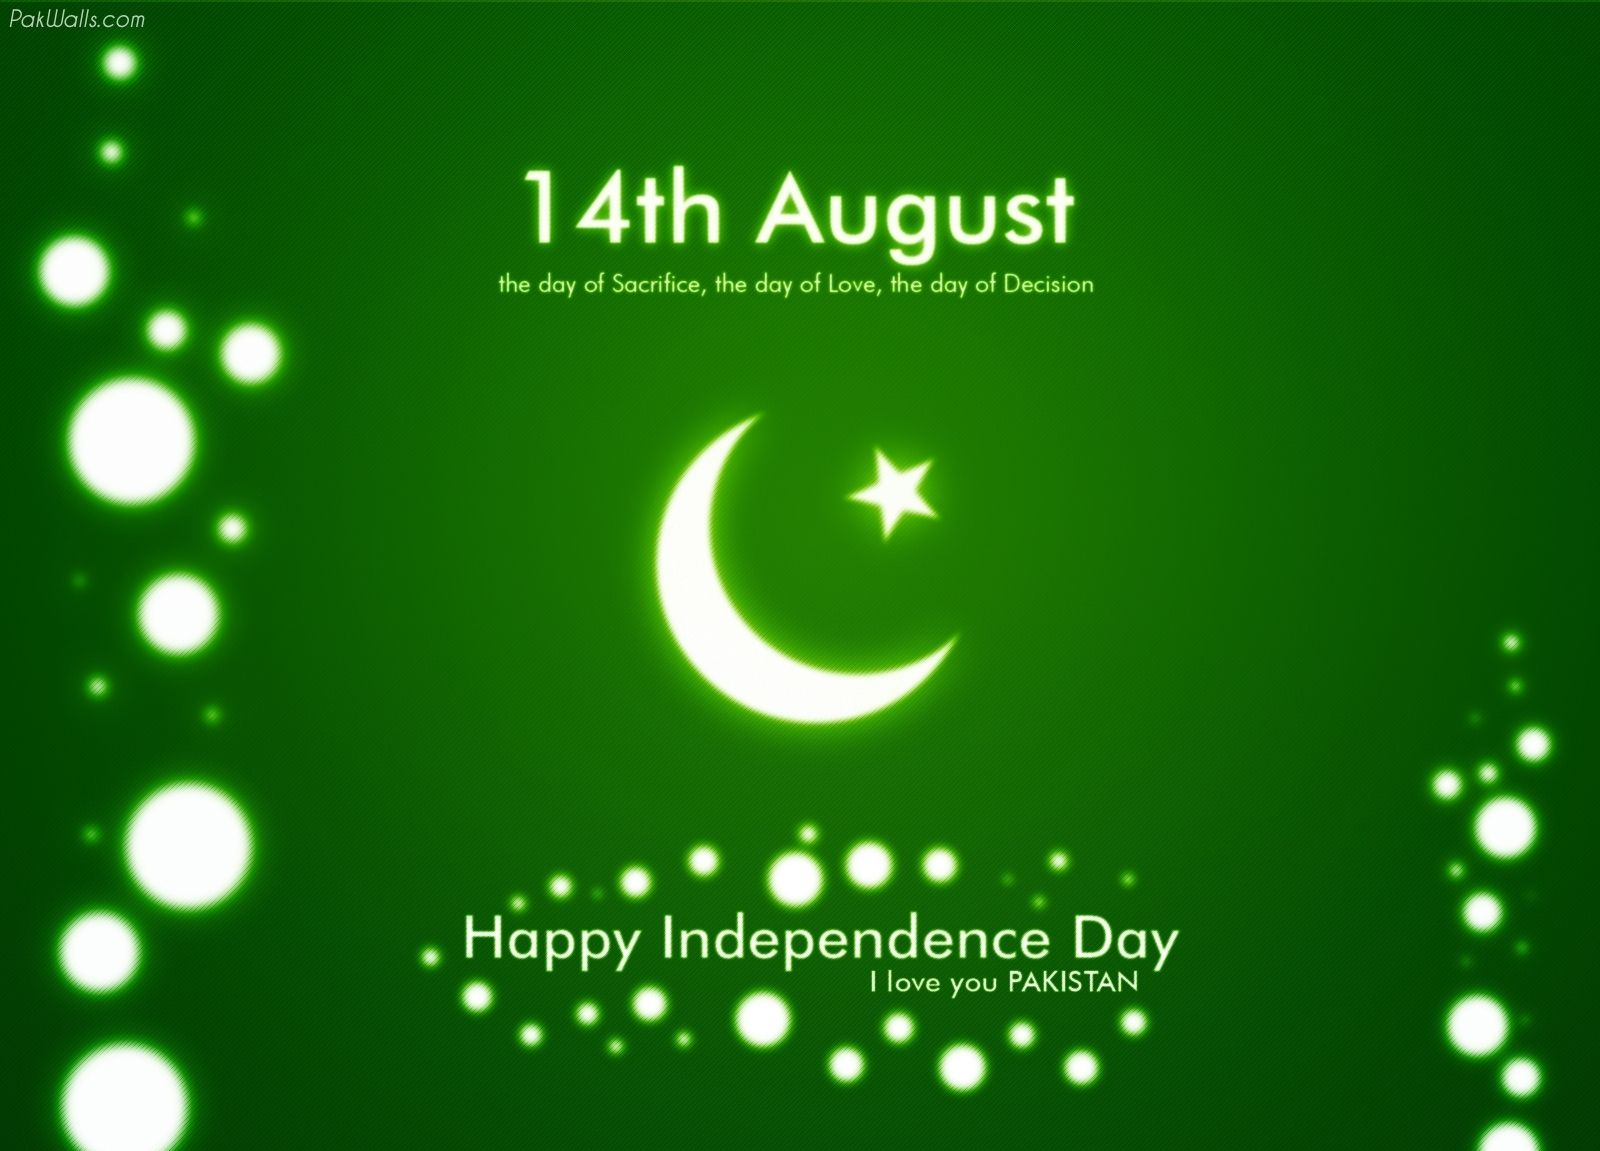 14 August Wallpapers Hd Free Download Pakistan Independence Day Happy Independence Day Pakistan Independence Day Quotes